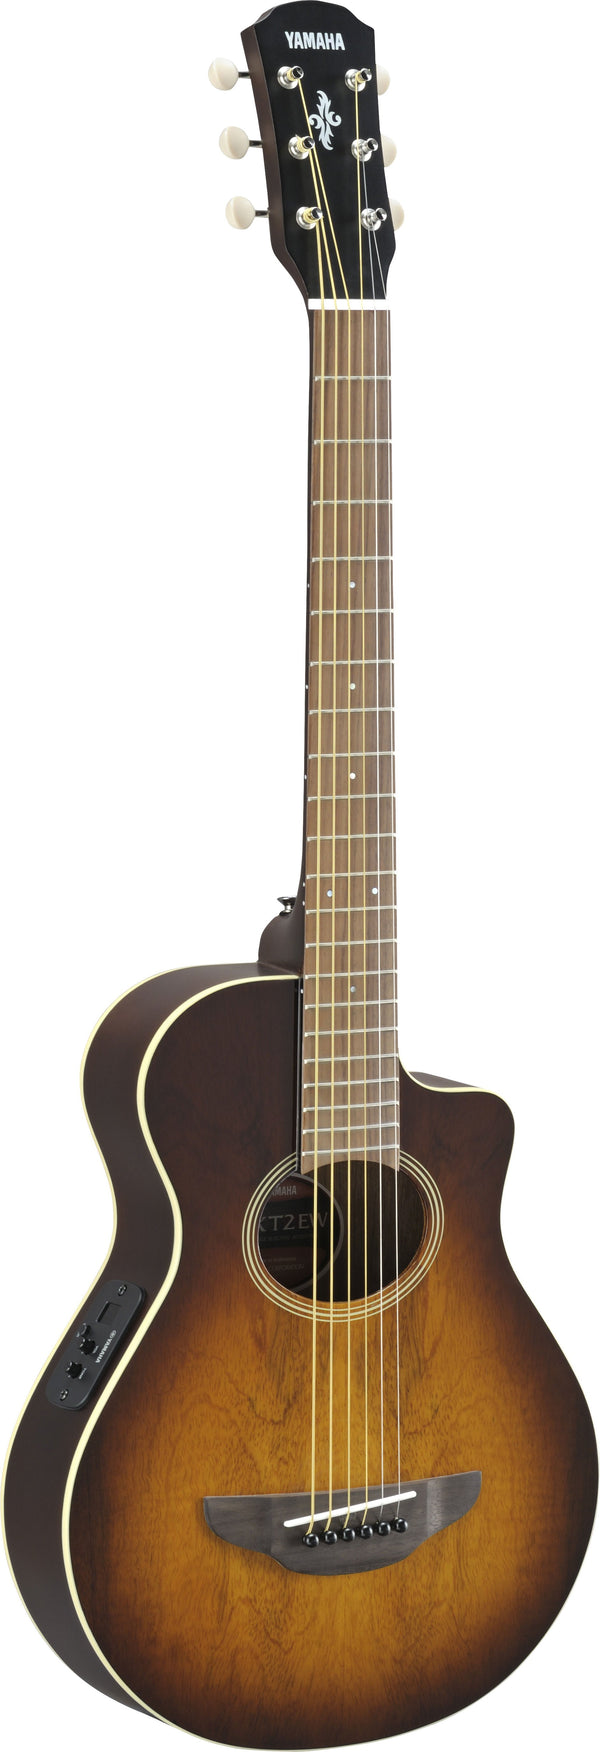 APXT2 EXOTIC WOOD TOBACCO BROWN SUNBURST FINISH